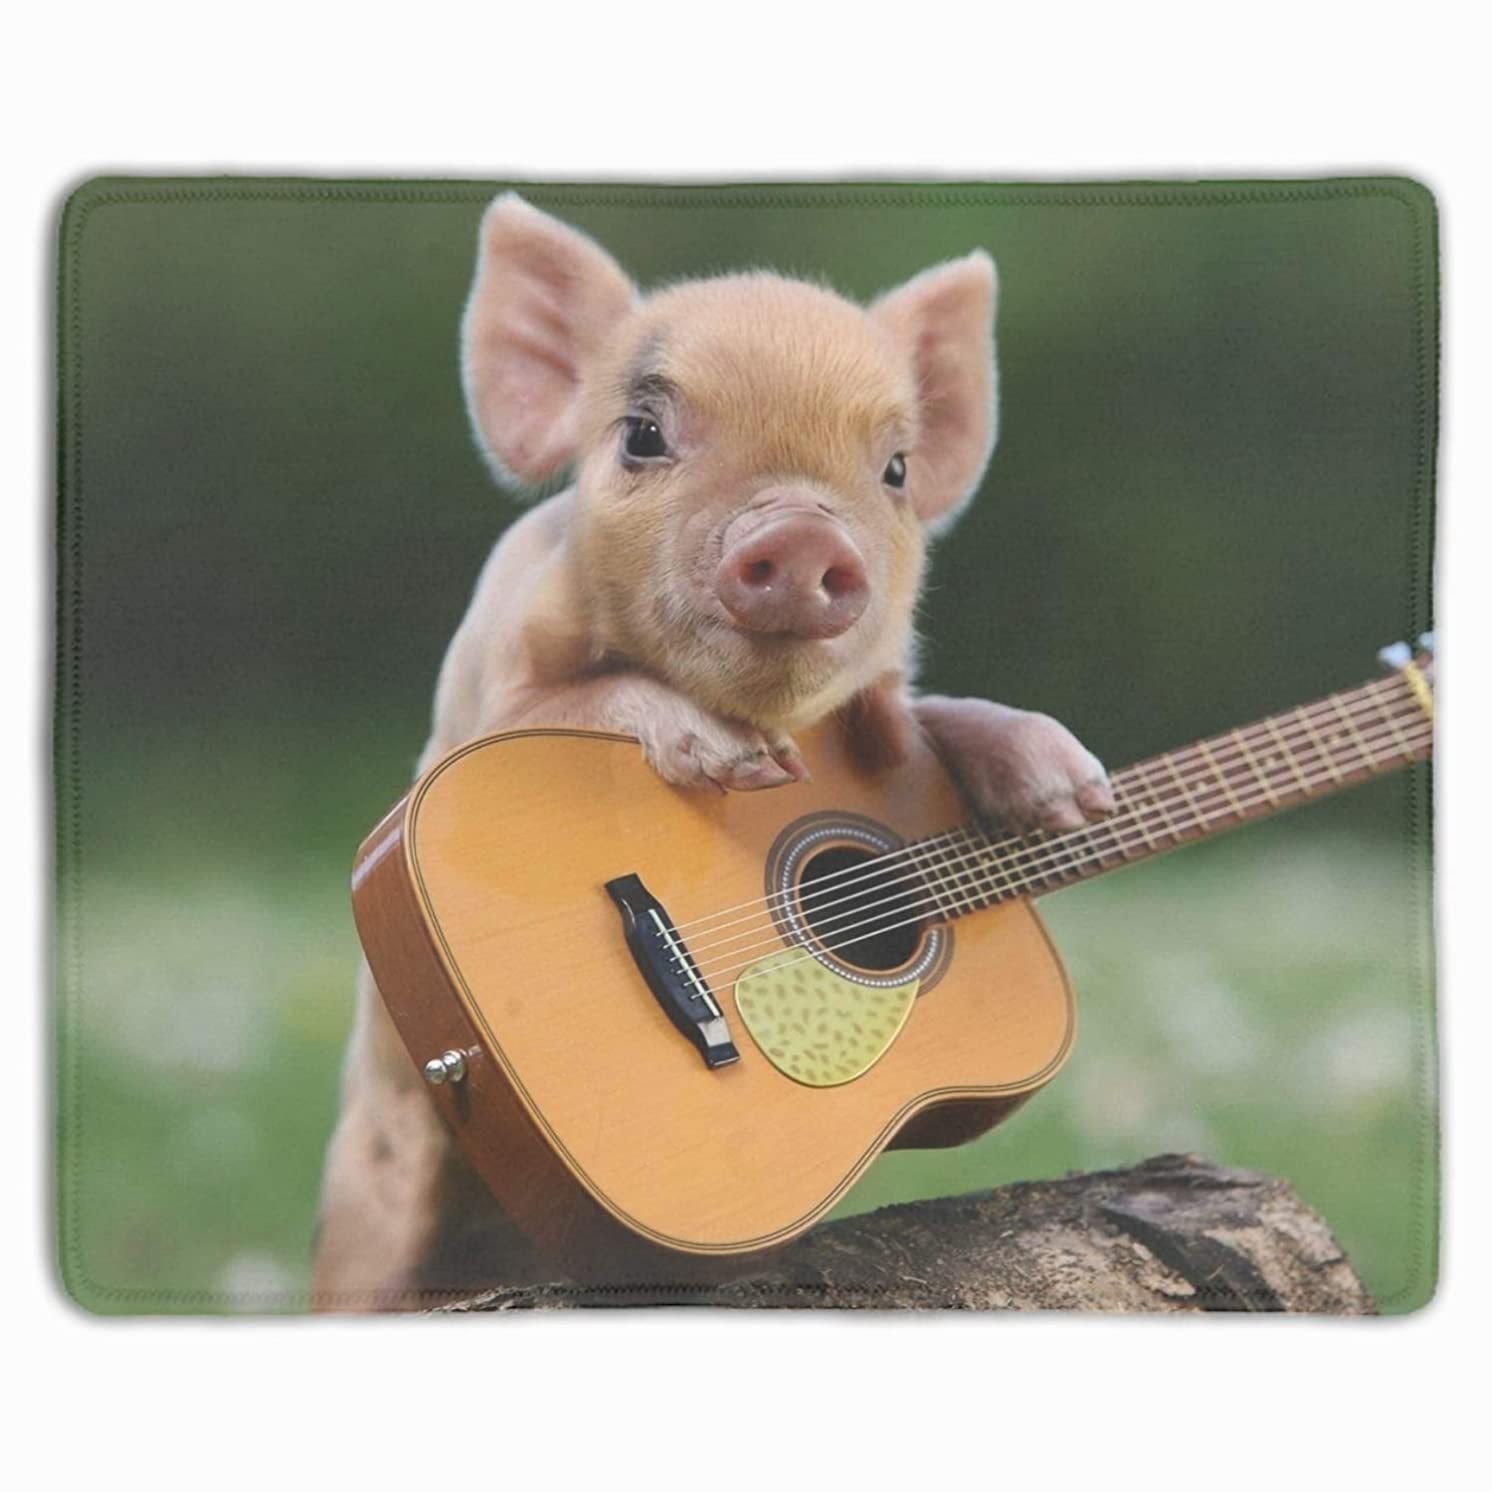 Stylish Design Pig Guitars Comfort Cloth Cover Non-Slip Rectangle Mousepad 11.8-inch by 9.85-inch